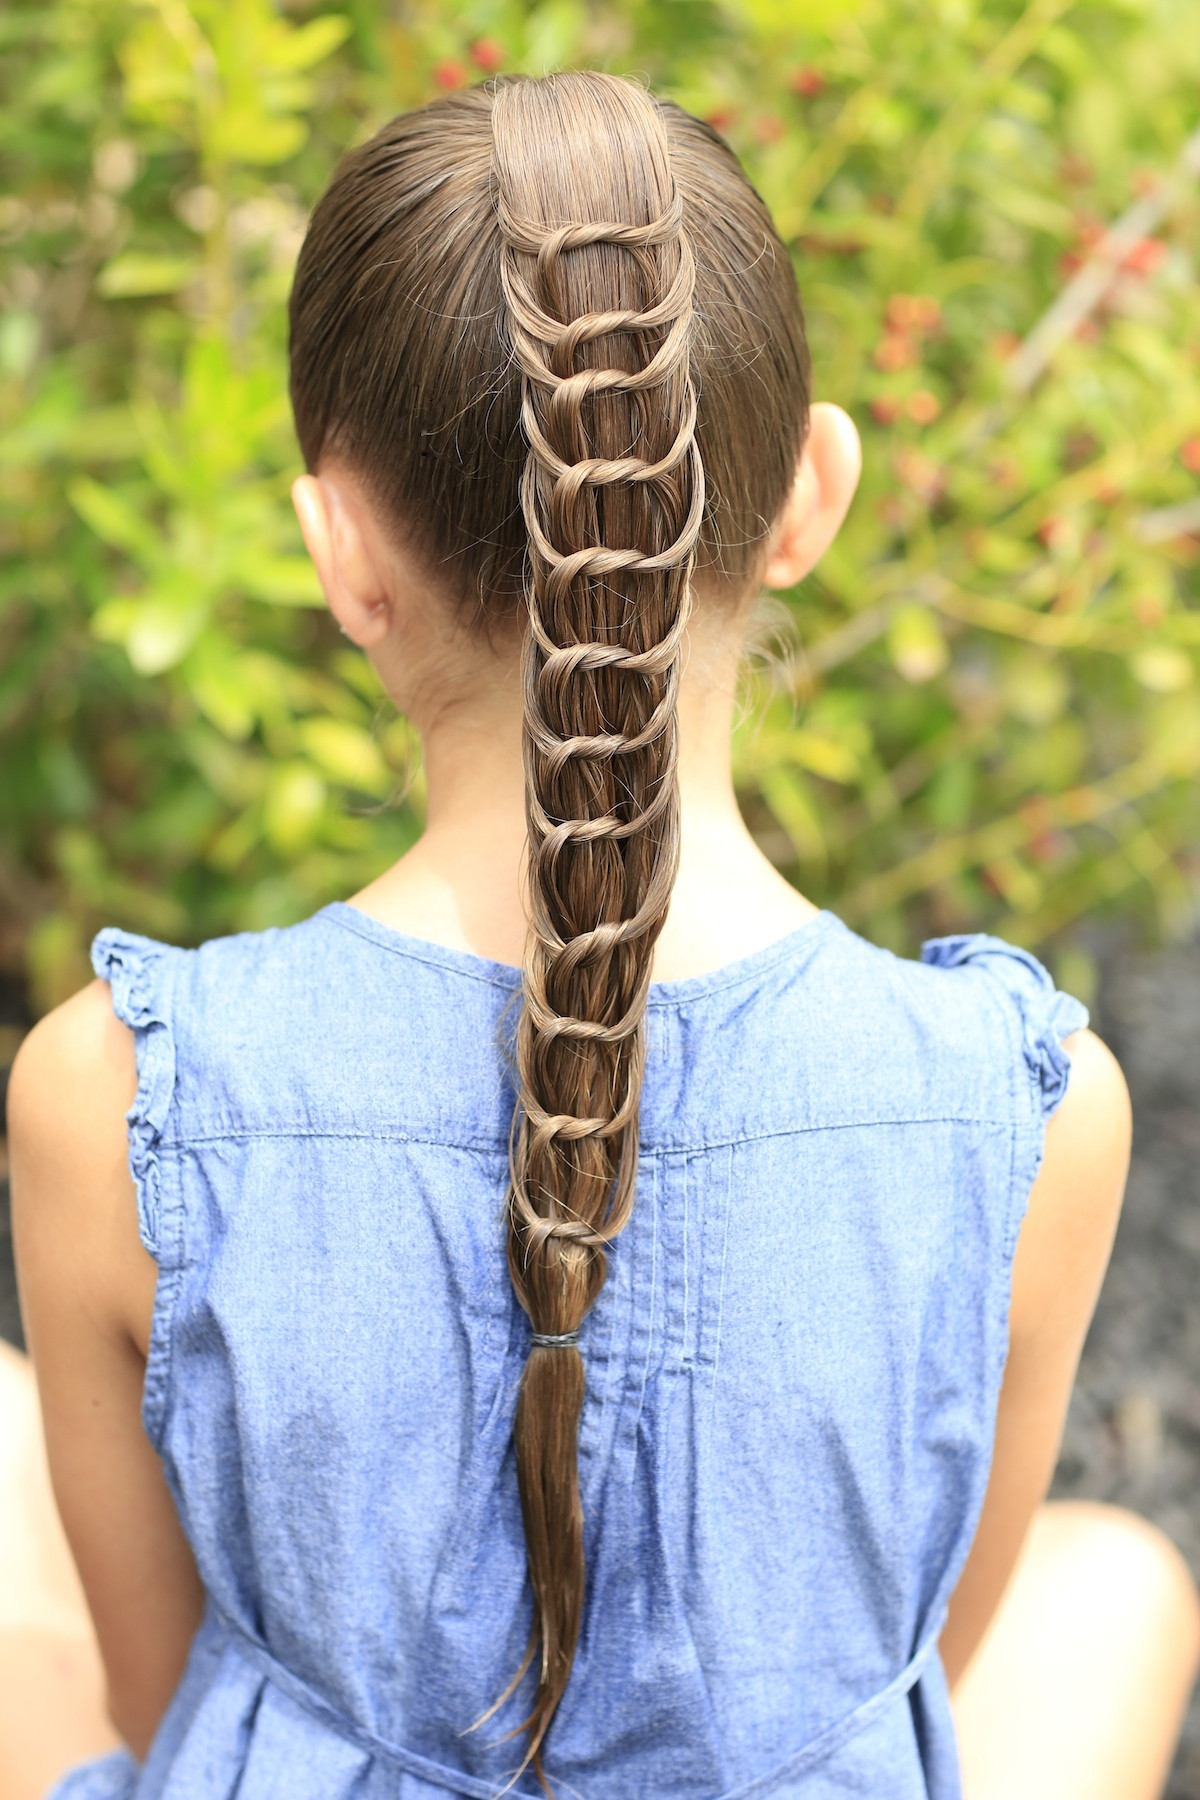 Best ideas about Cute Girls Haircuts . Save or Pin The Knotted Ponytail Hairstyles for Girls Now.